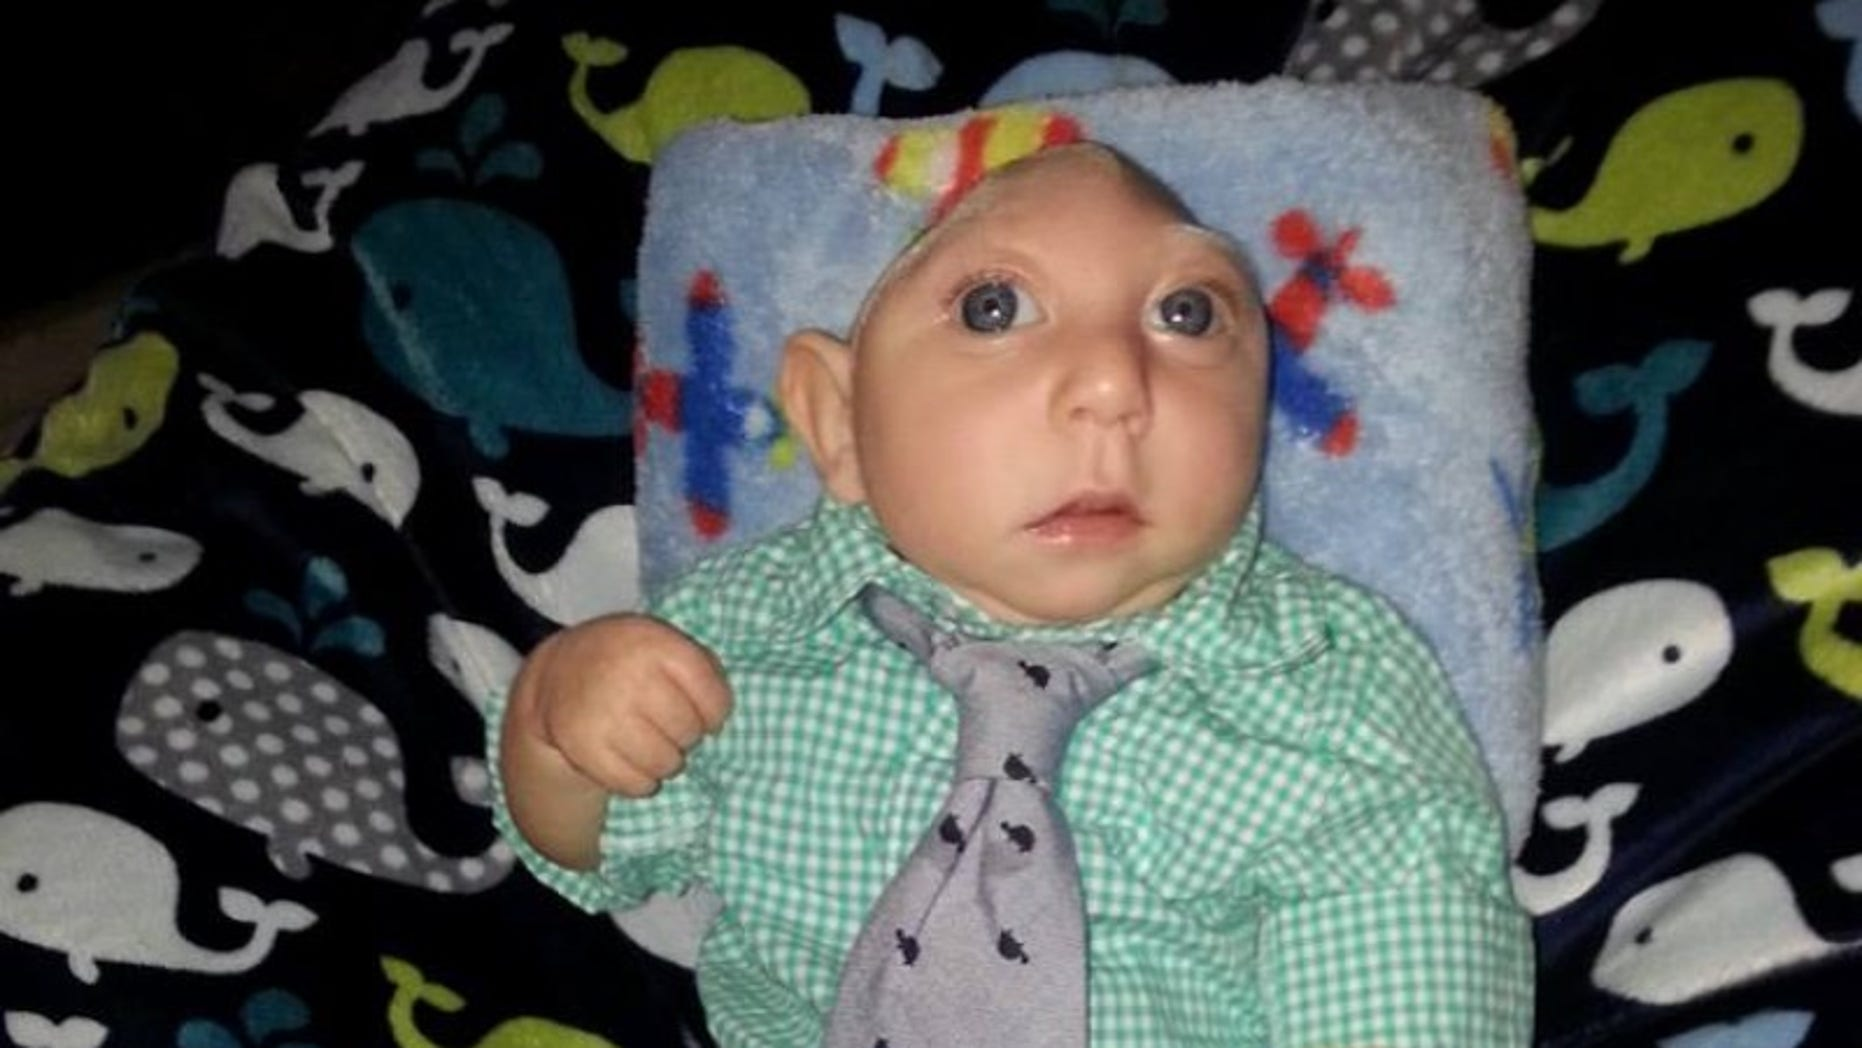 Jaxon Buell was born on August 27, 2014, and was recently diagnosed with microhydranencephaly, an extreme brain malformation for which there is no known cure.